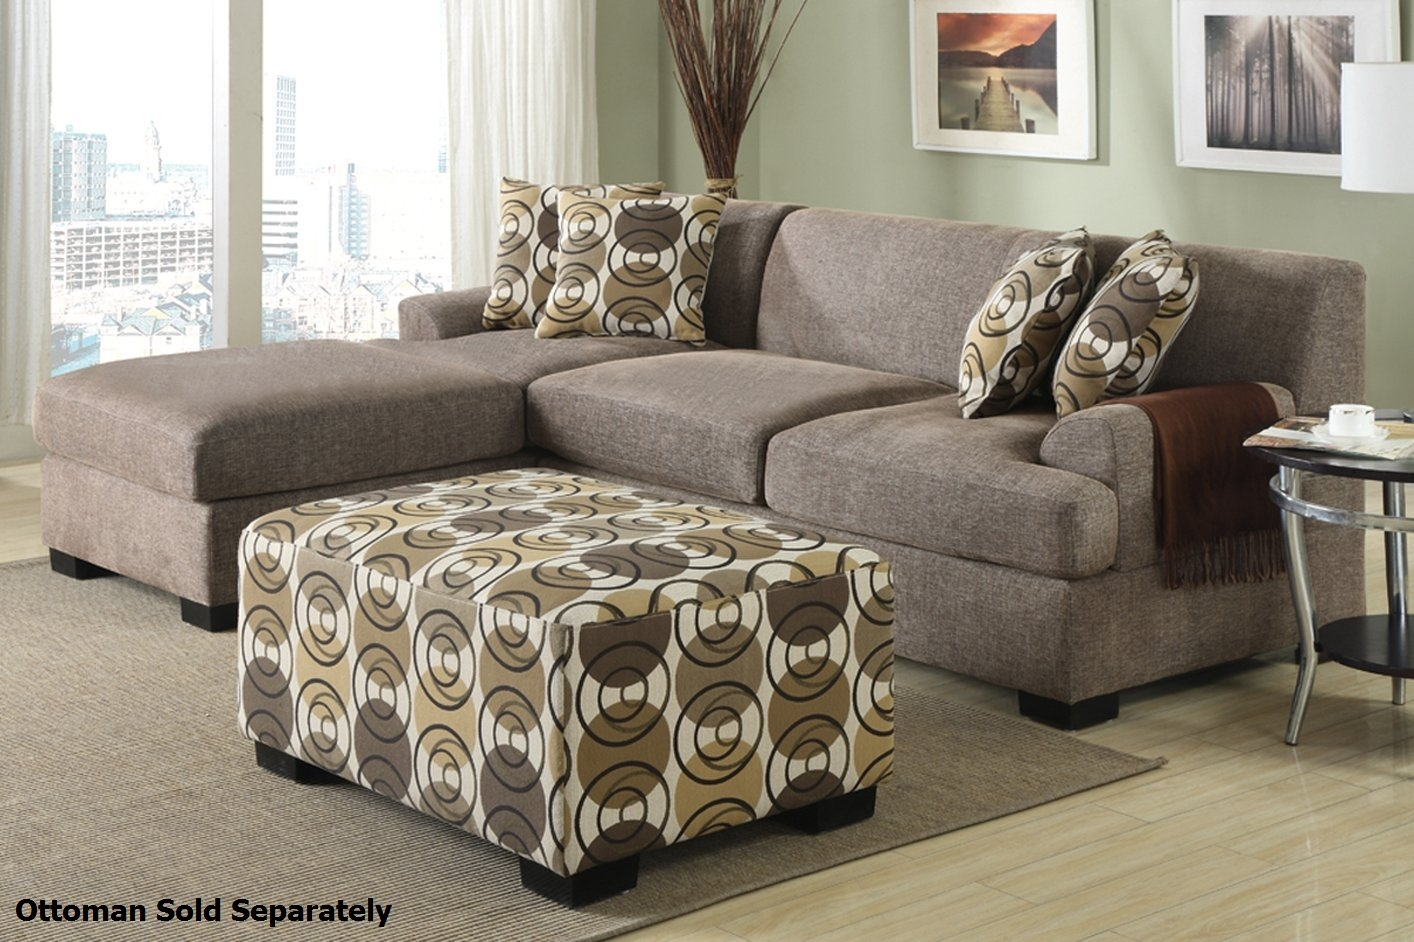 Montreal Ii Beige Fabric Sectional Sofa – Steal A Sofa Furniture Intended For Montreal Sectional Sofas (View 6 of 10)